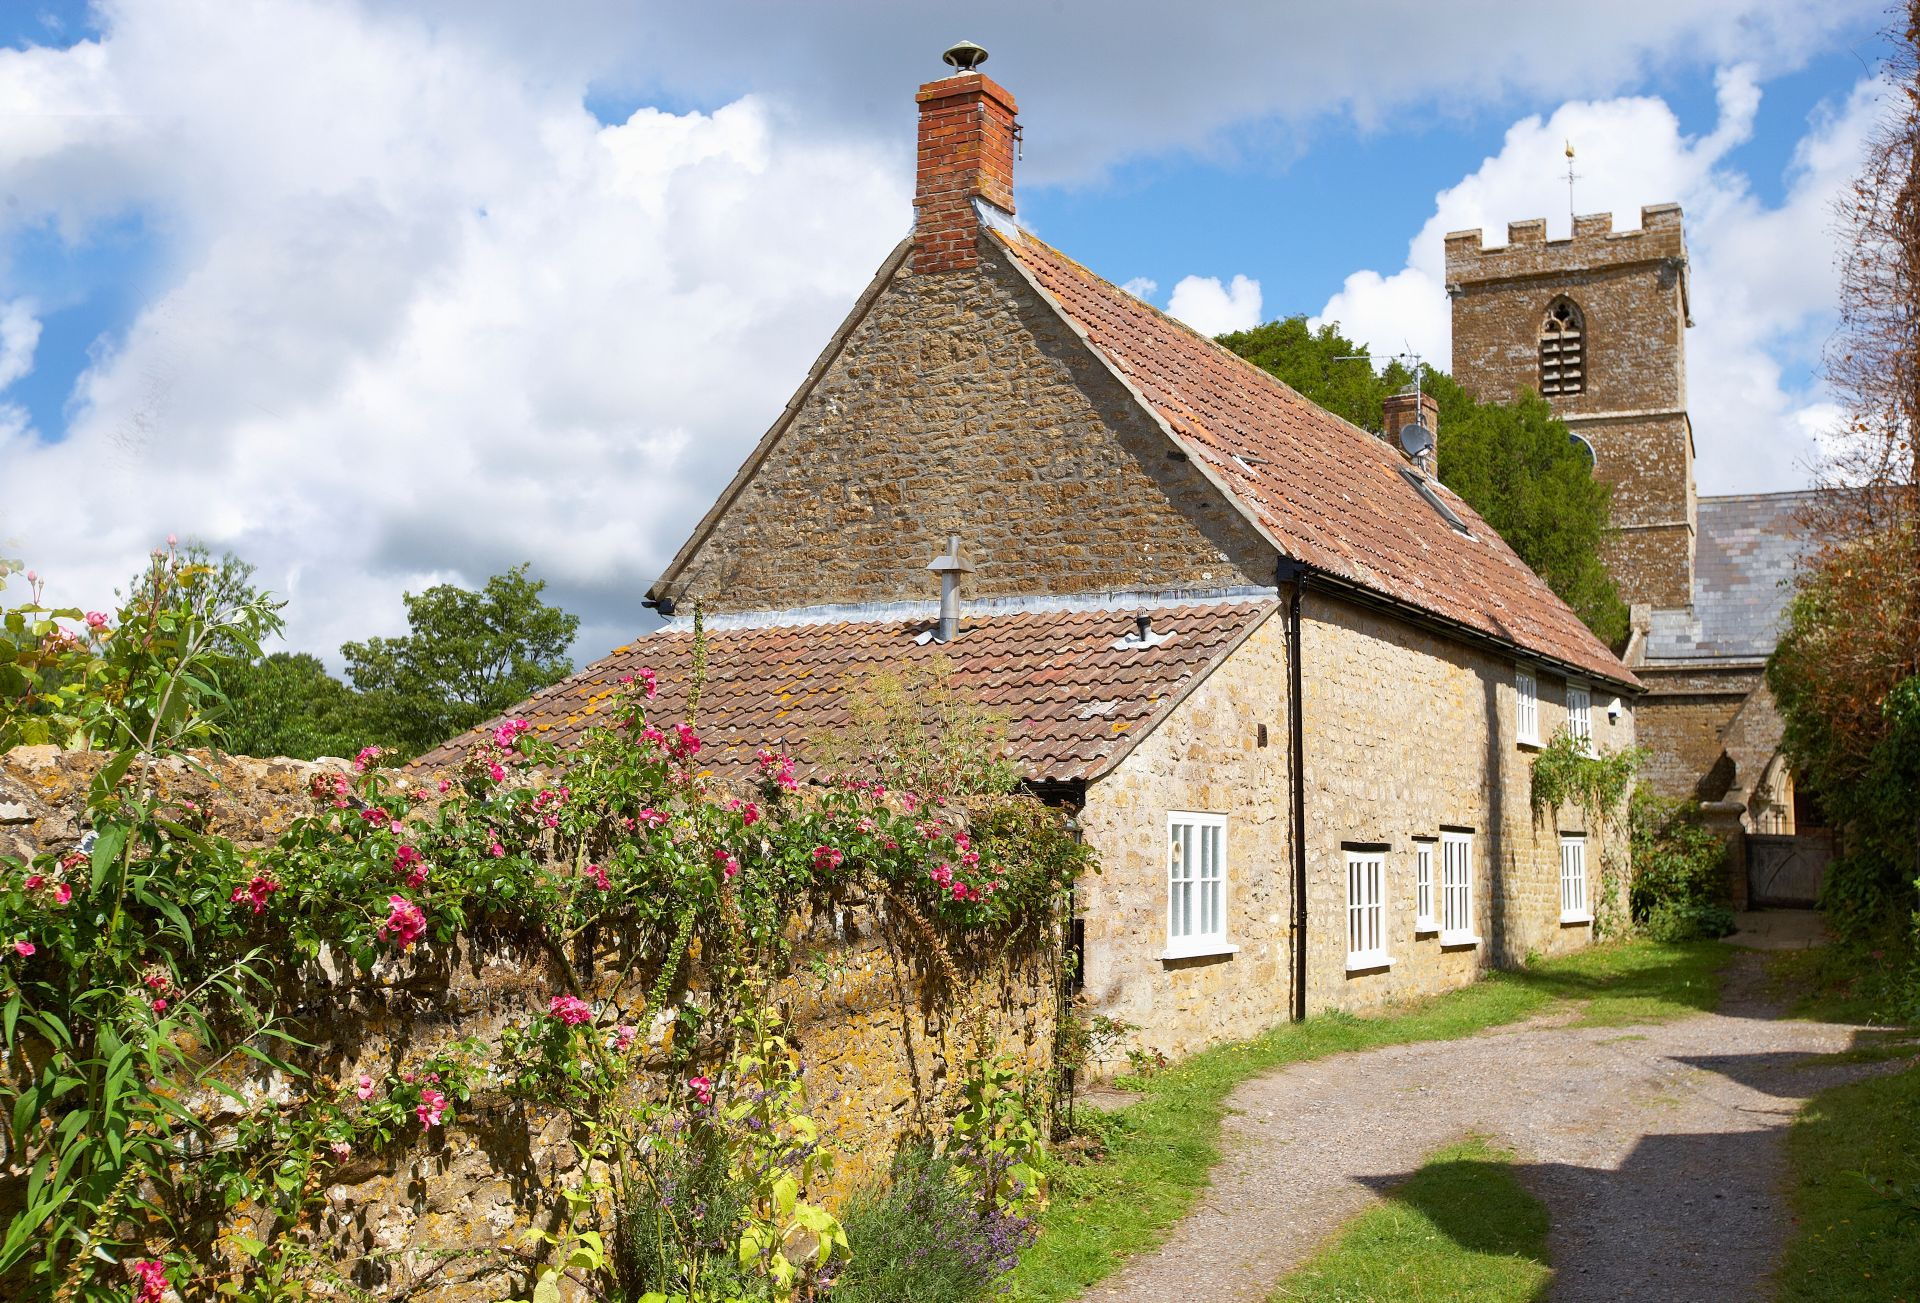 Rose Cottage is conveniently situated between the Norman church and the Three Horse Shoes public house